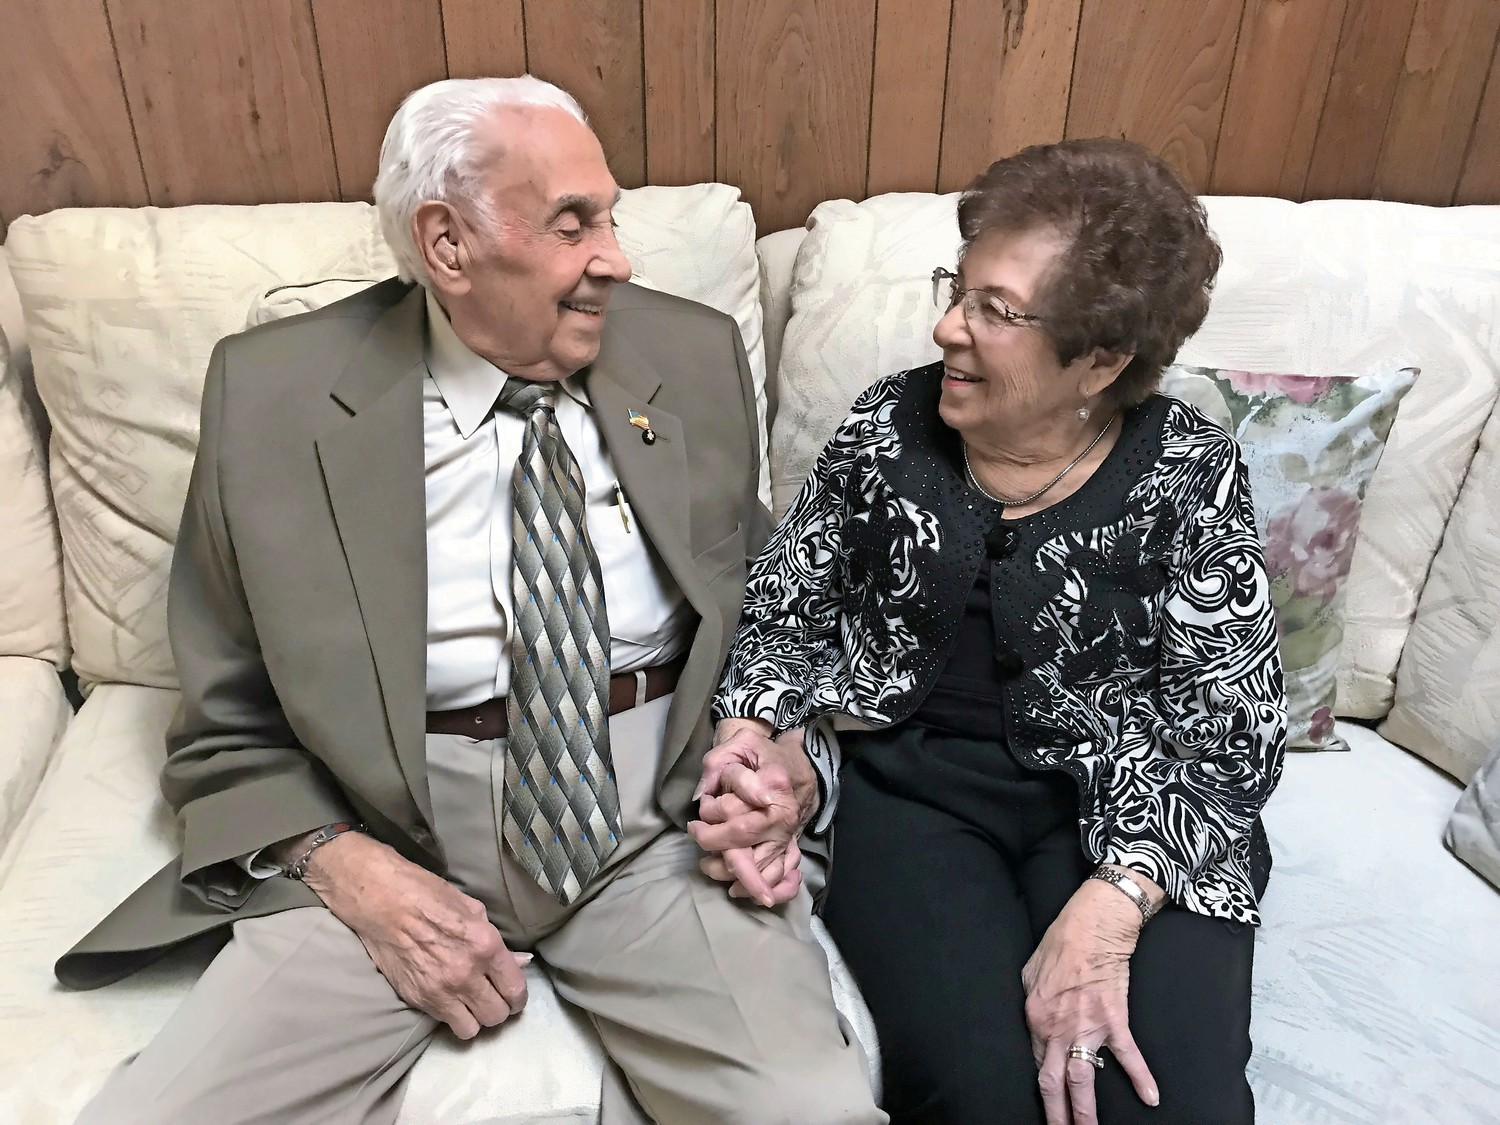 Johanna and Joseph Lucca were set to mark their 70th wedding anniversary on Jan. 4. The couple has lived in Wantagh for over three decades.